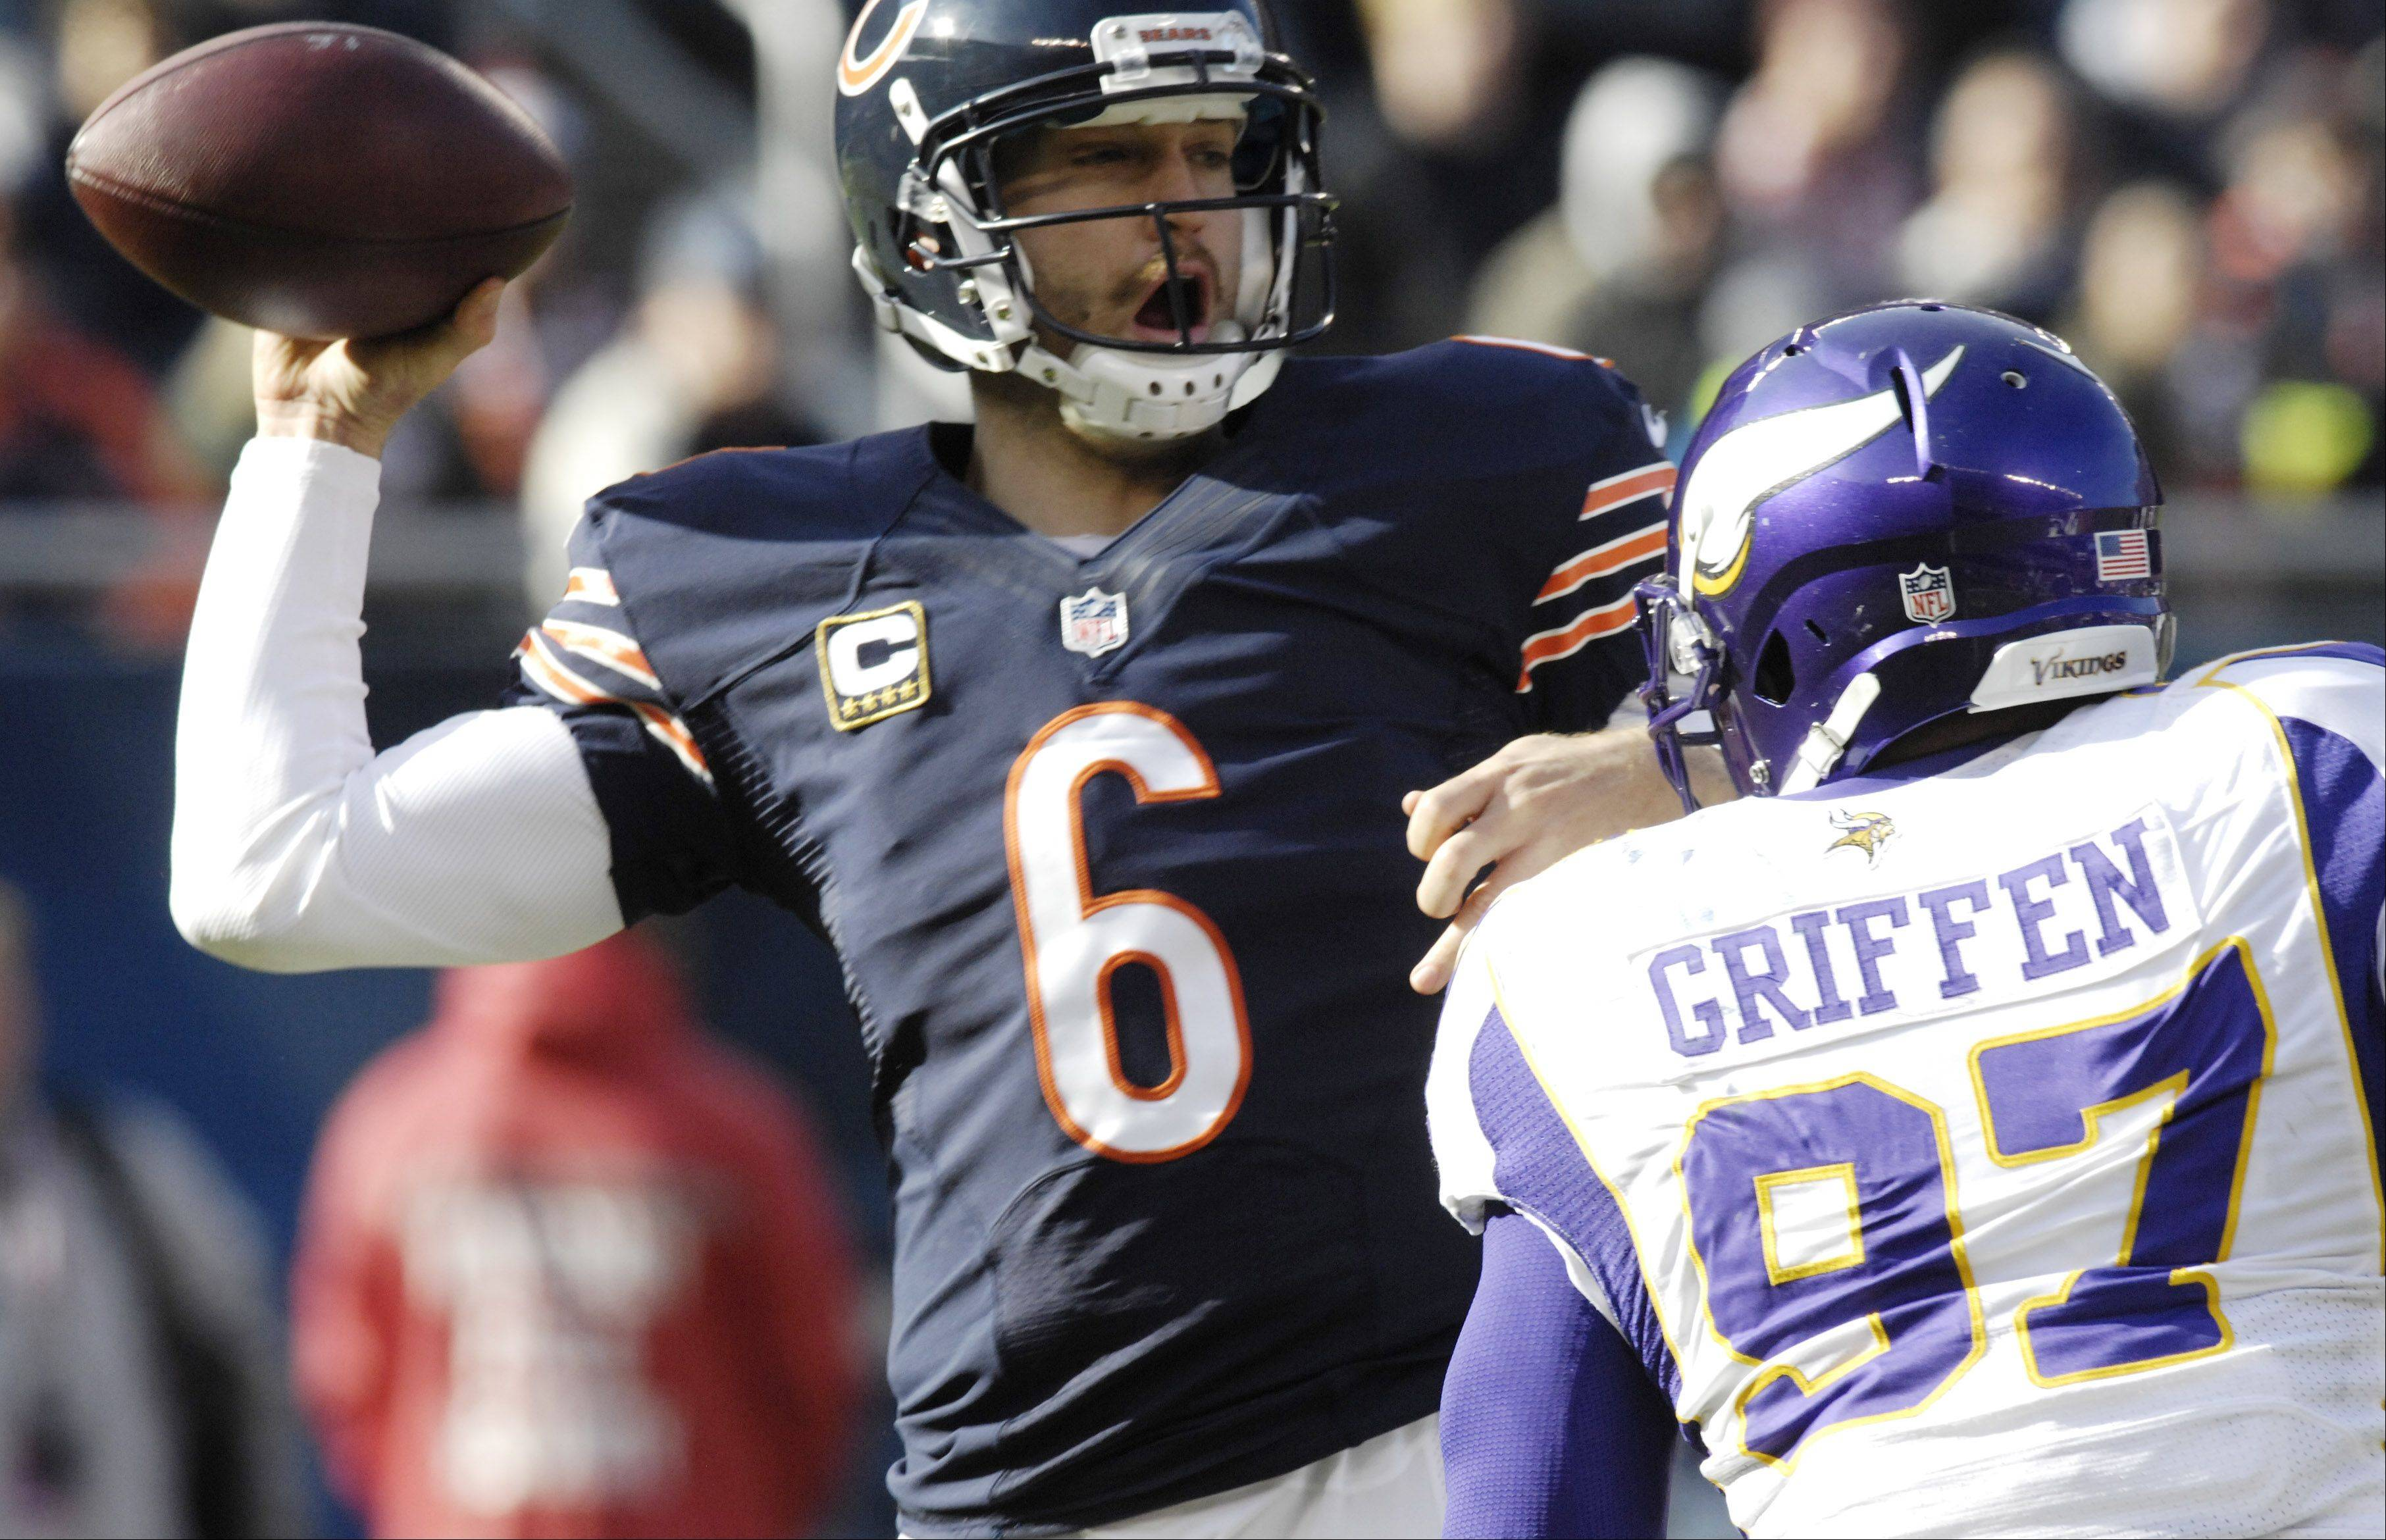 Bears quarterback Jay Cutler says he will need to get rid of the ball quickly Sunday to have a chance against a strong Seattle defense.